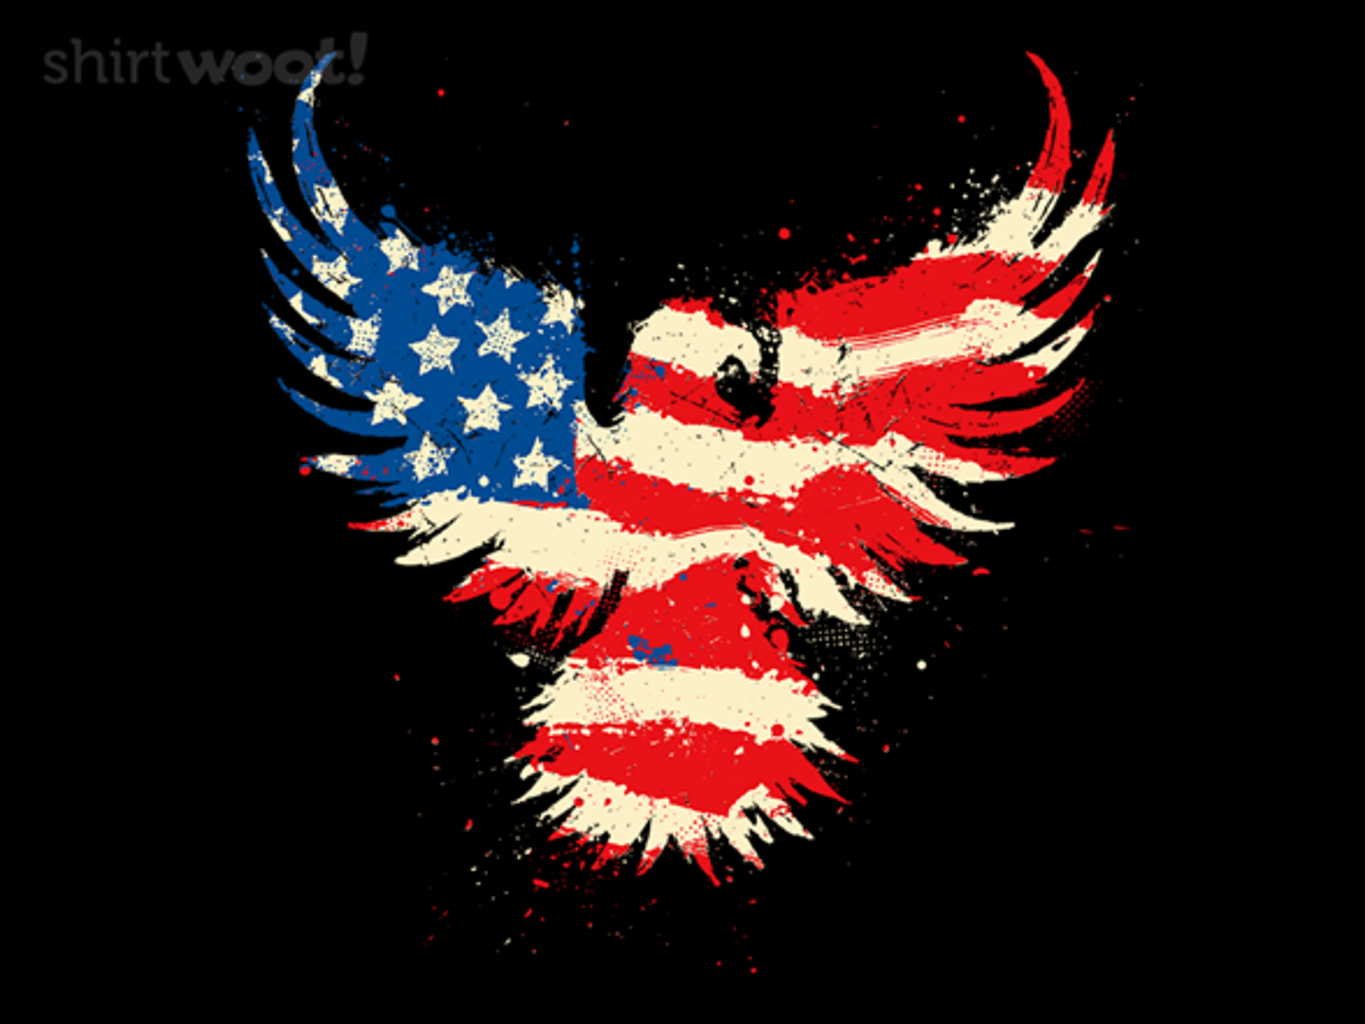 Woot!: All American